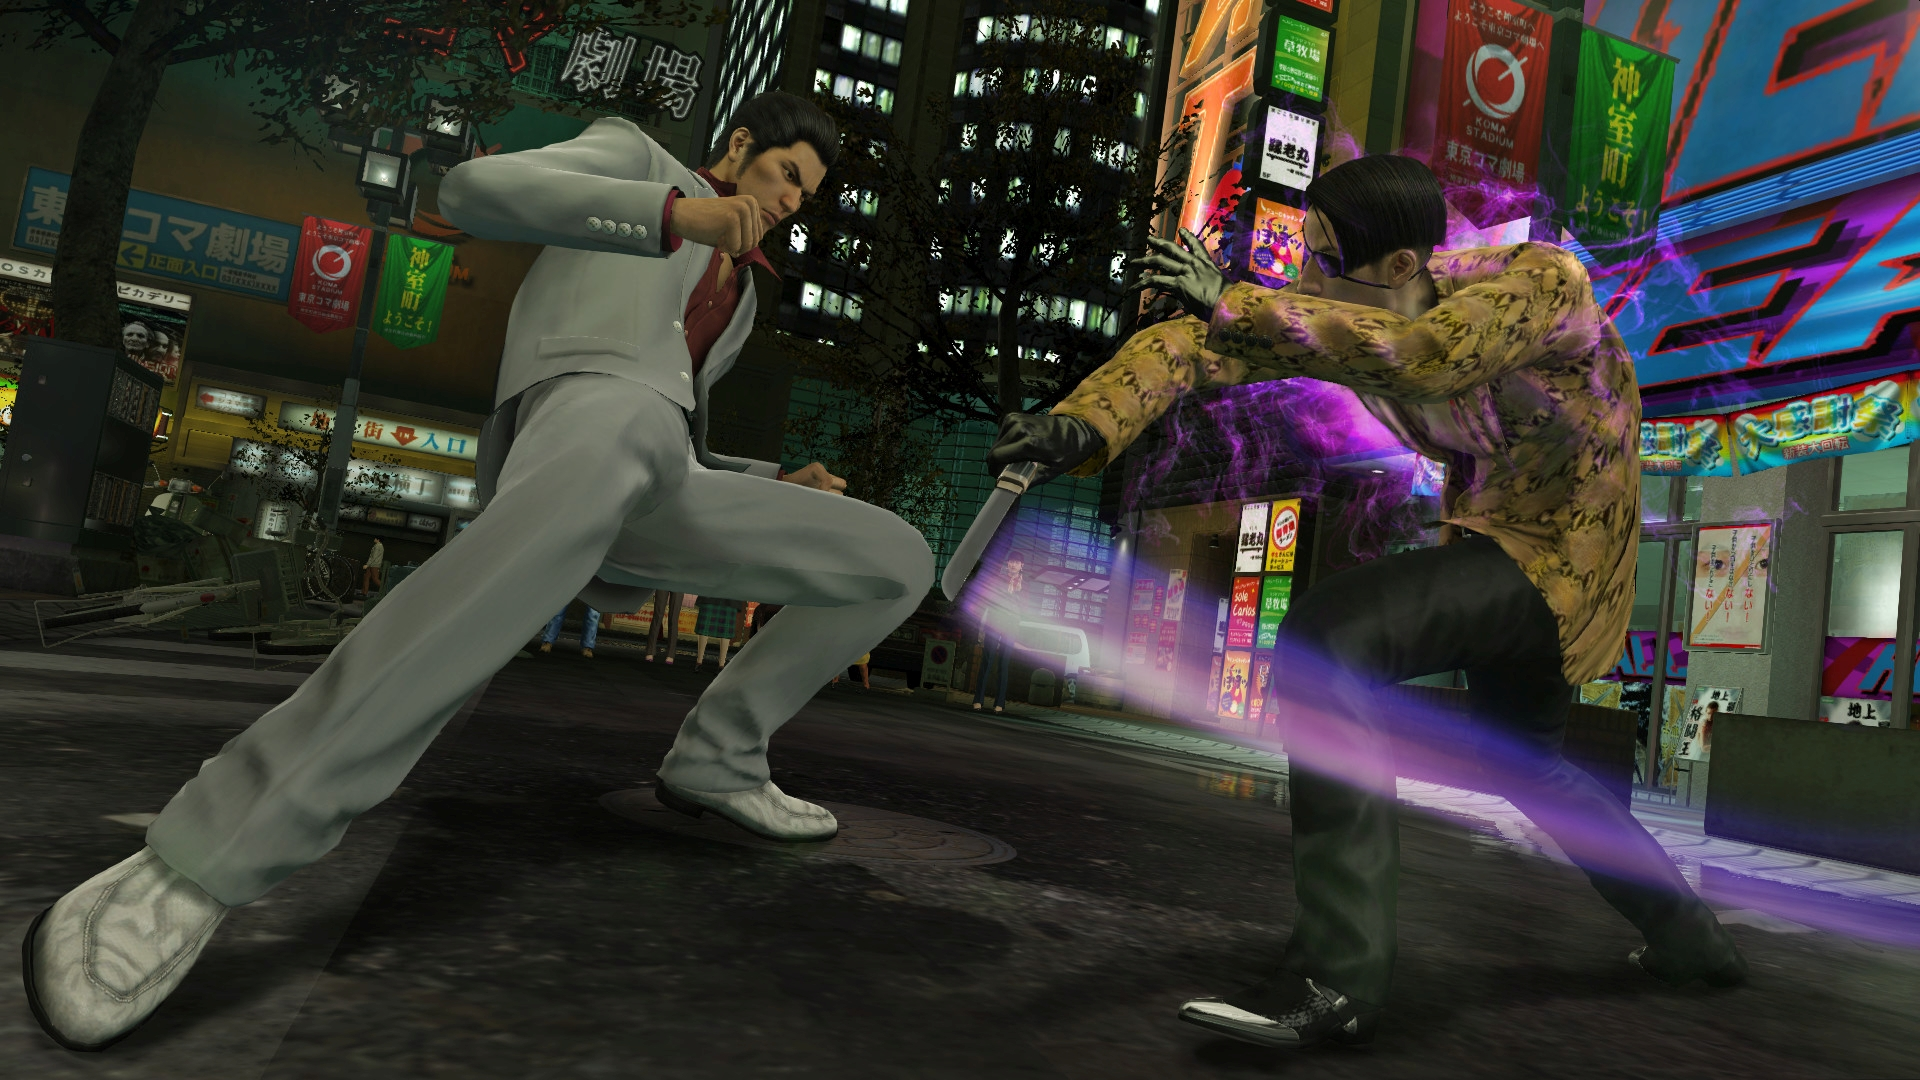 Yakuza 0 and Yakuza Kiwami Owners Will Receive Free Deluxe Edition Upgrade